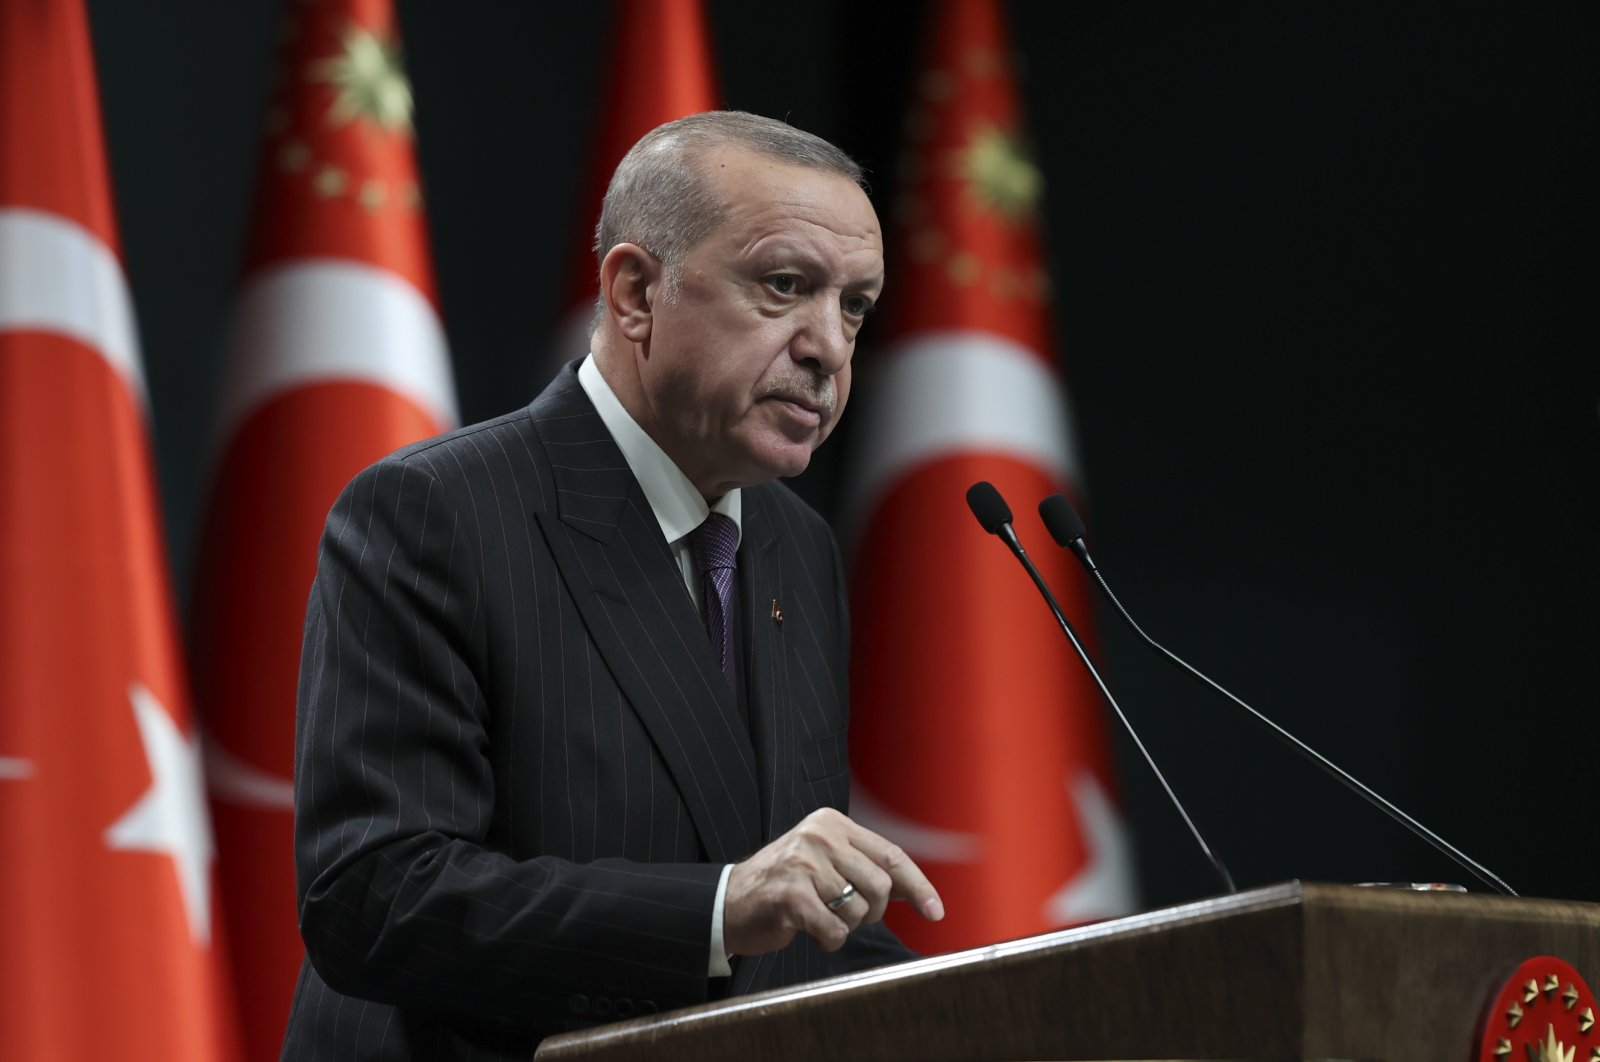 President Recep Tayyip Erdoğan speaks during a press conference at the Presidential Complex following a Cabinet meeting in the capital Ankara, Turkey, Dec. 14, 2020. (AA Photo)